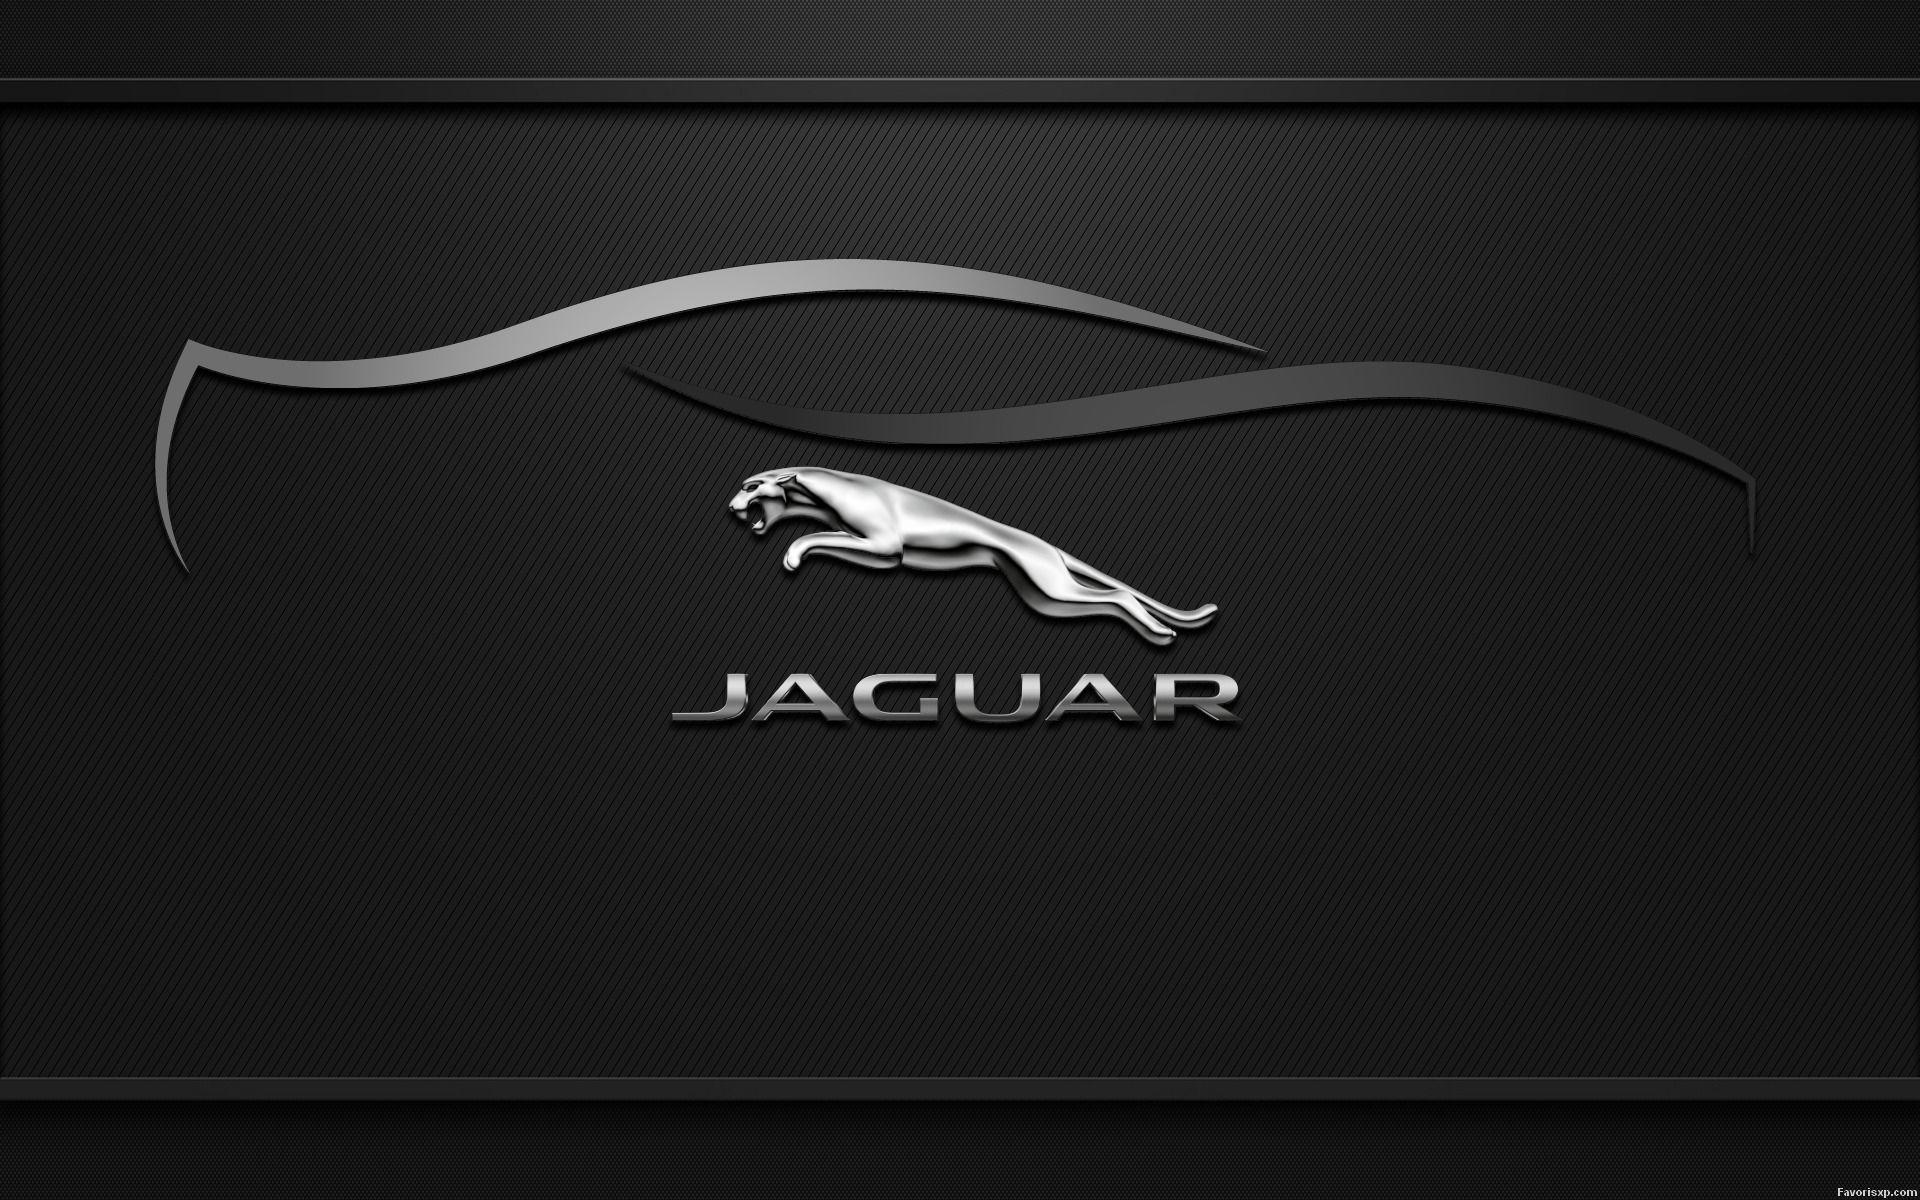 Ferrari Car Symbol Wallpaper Jaguar Logo Wallpapers Wallpaper Cave